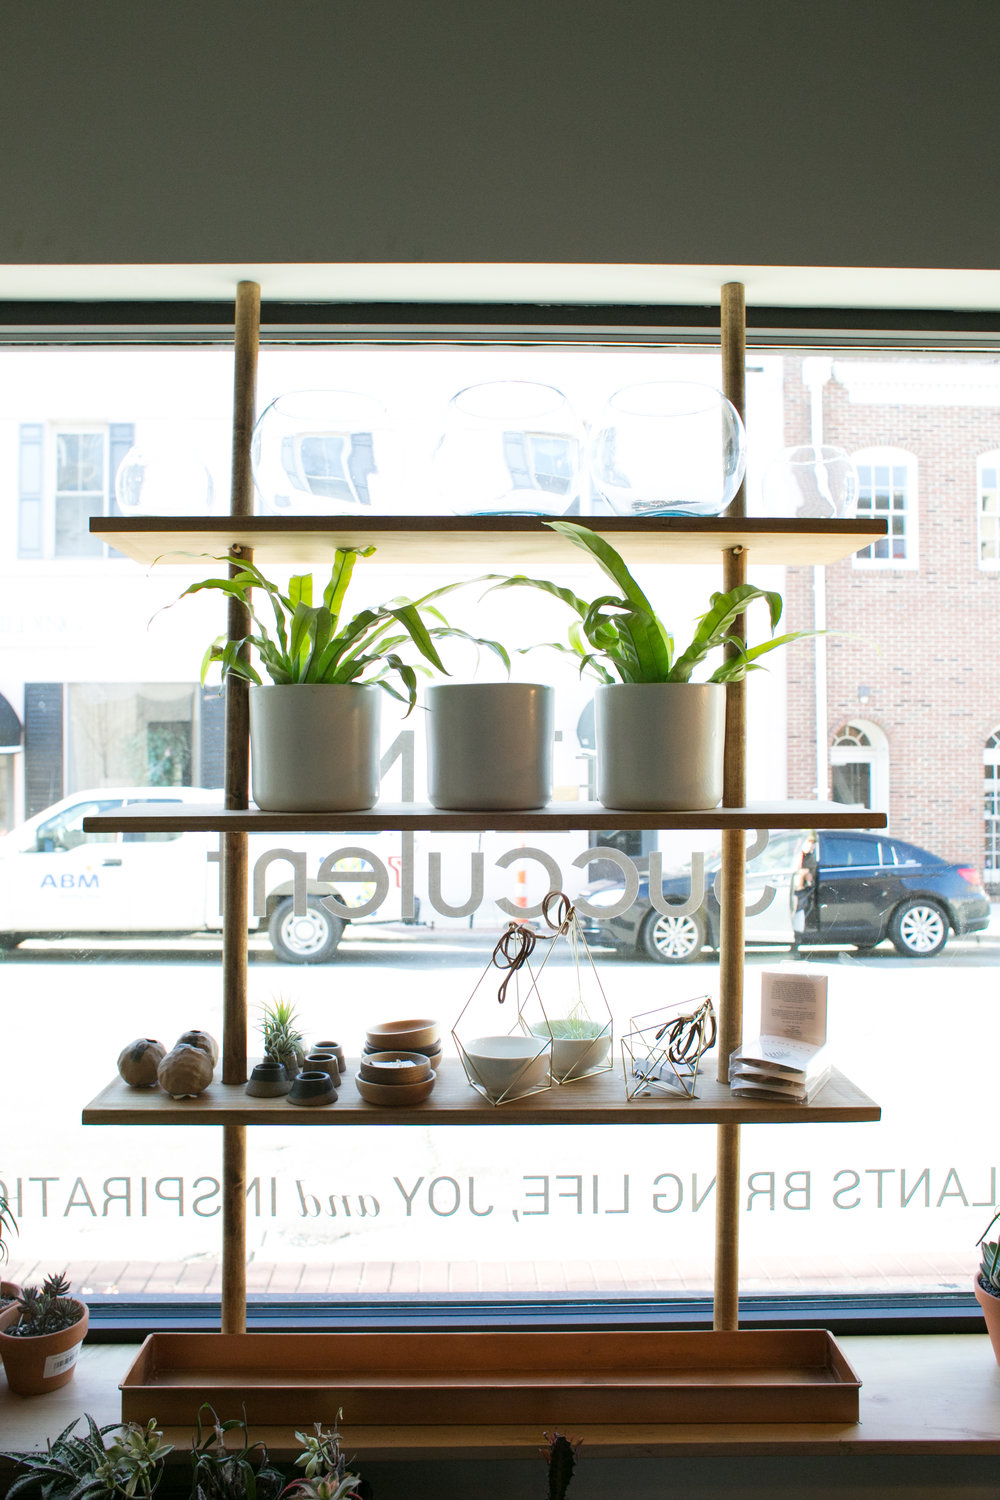 A pair of bird's nest ferns ( Asplenium nidus)  anxiously awaiting spring's arrival in our storefront window.